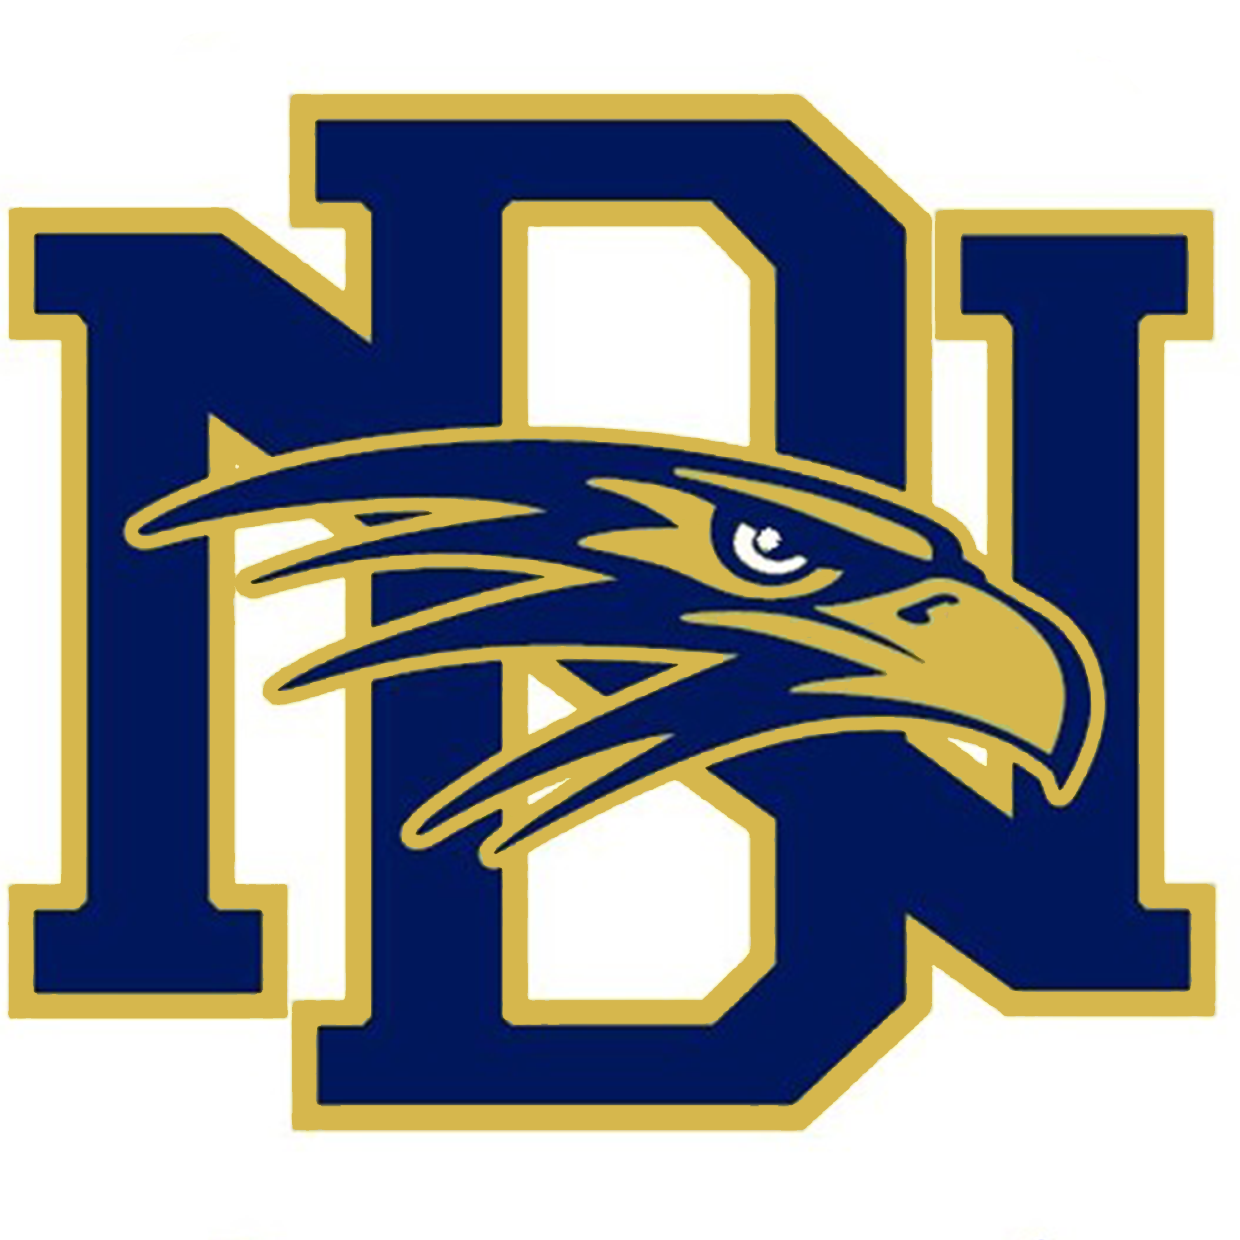 Del Norte Nighthawks